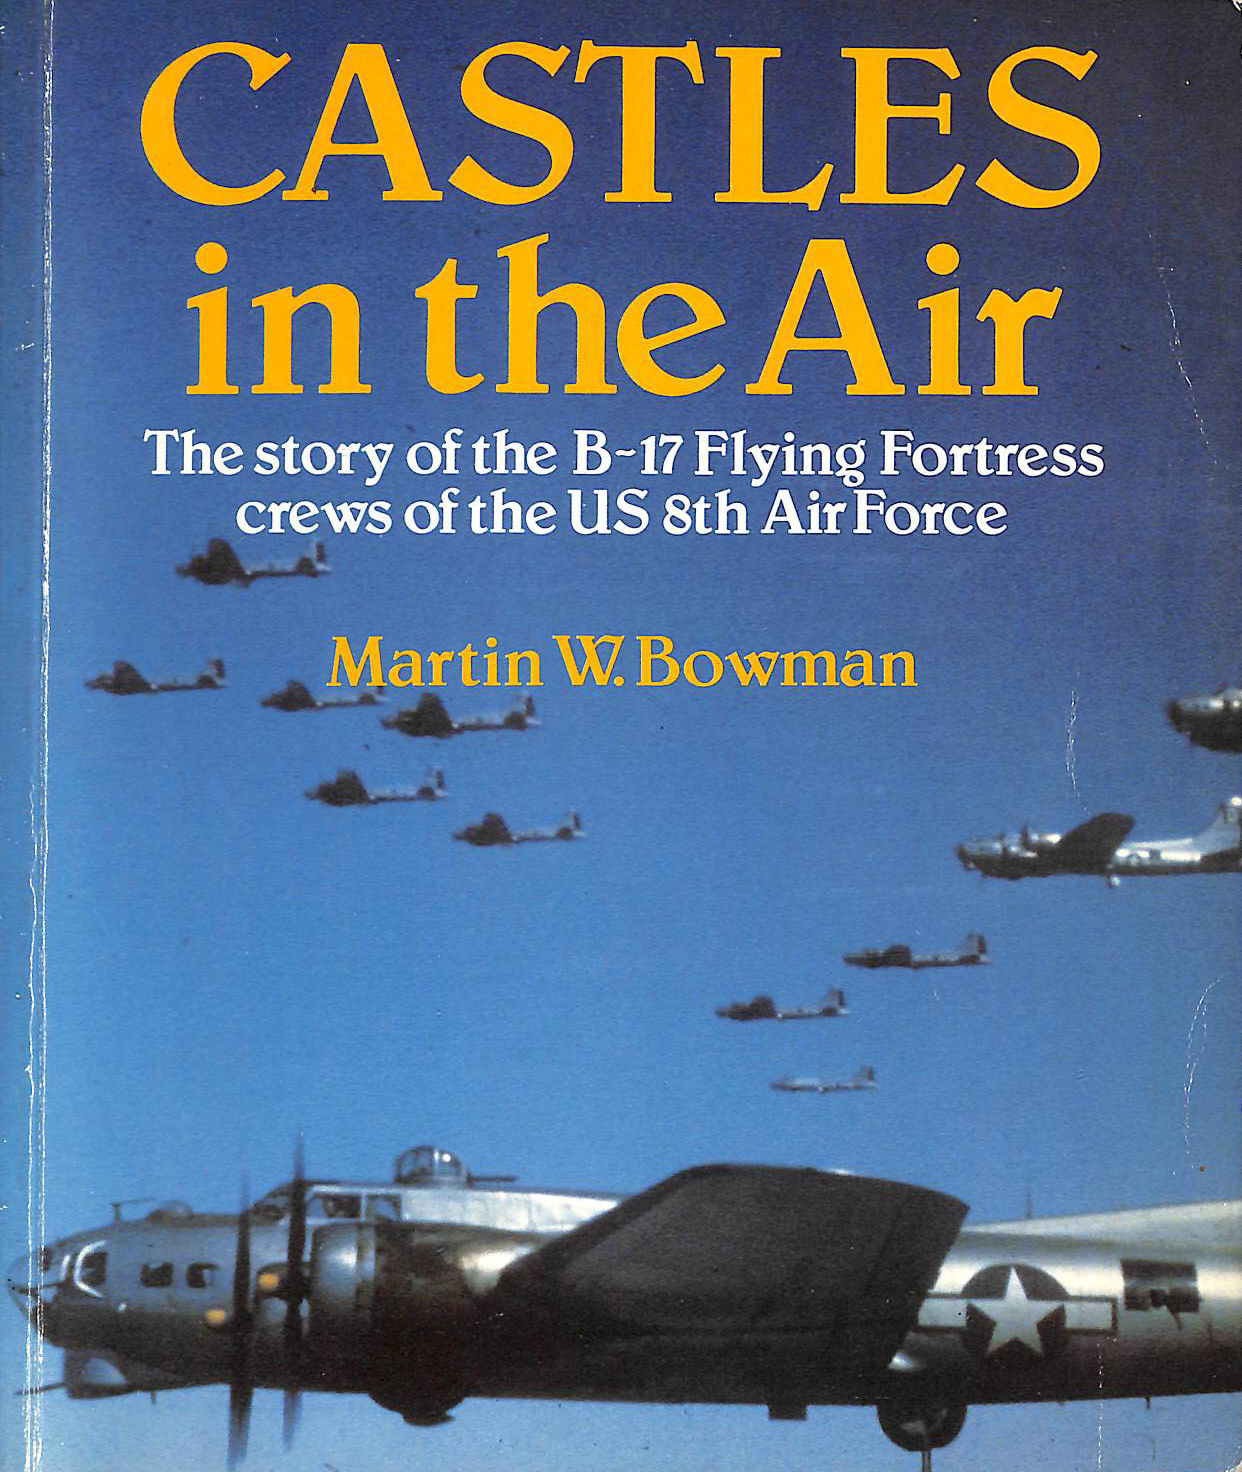 Image for Castles in the Air: The Story of the B-17 Flying Fortress Crews of the US 8th Air Force